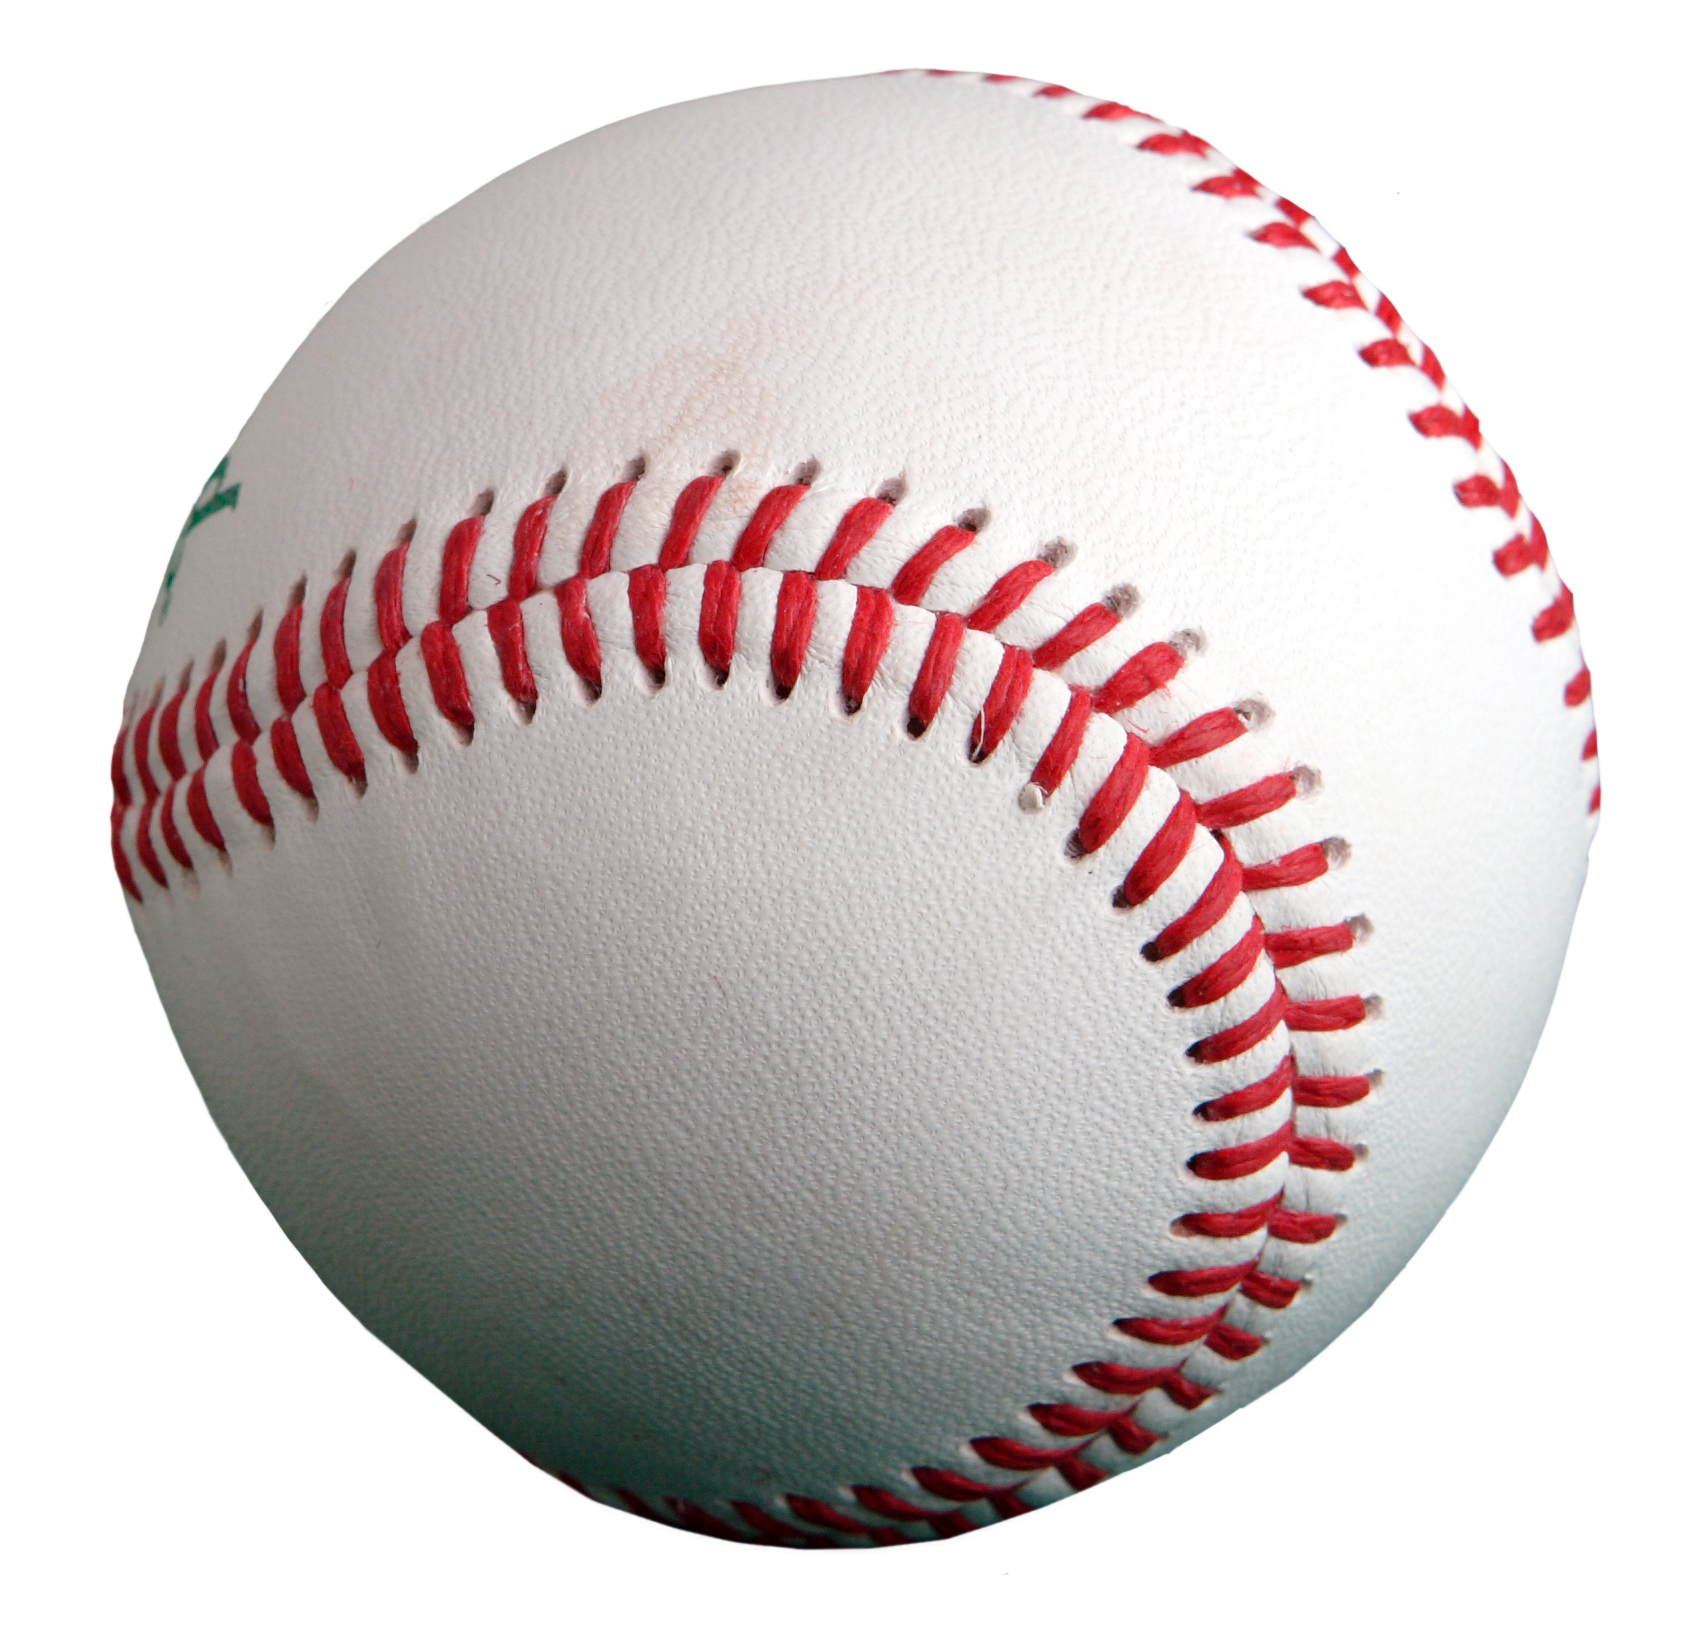 Archivo:Baseball (crop).jpg - Wikipedia, la enciclopedia libre